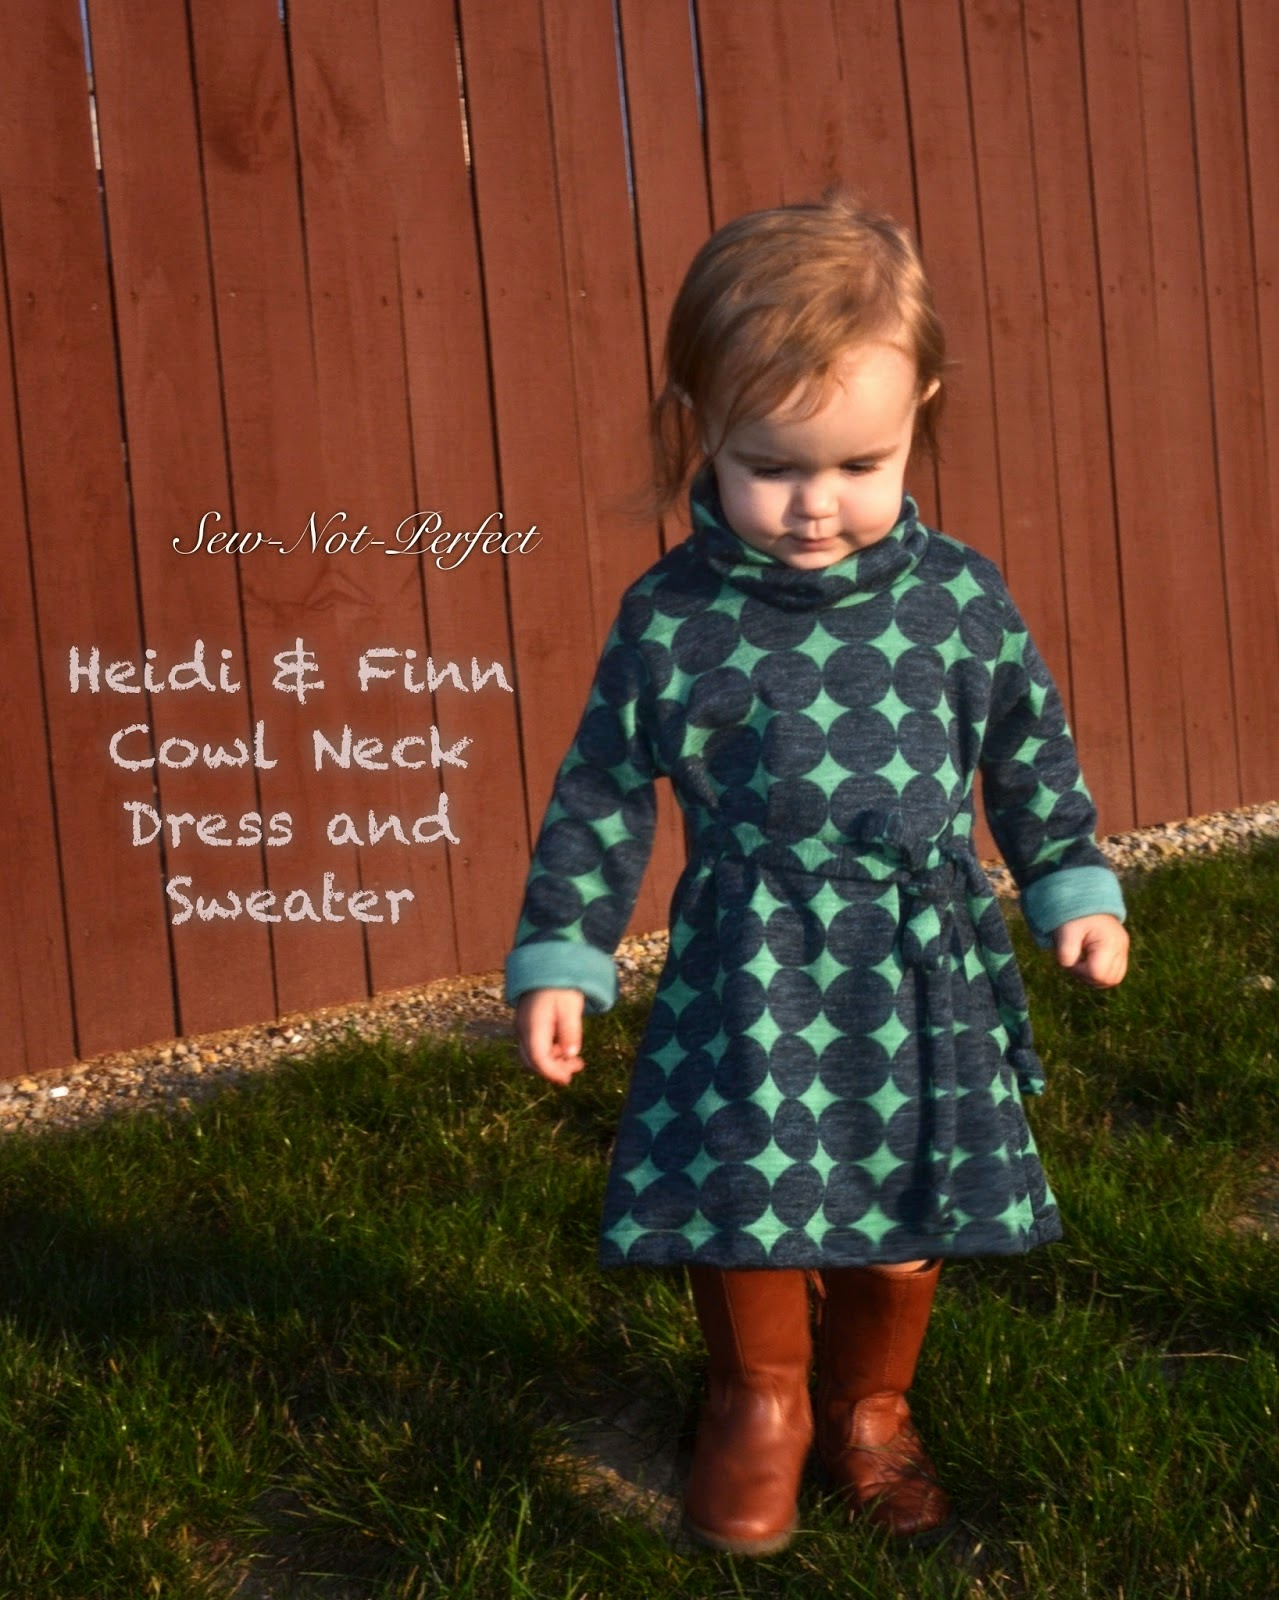 http://sew-not-perfect.blogspot.ca/2014/09/cowl-neck-dress-and-sweater-from-heidi.html